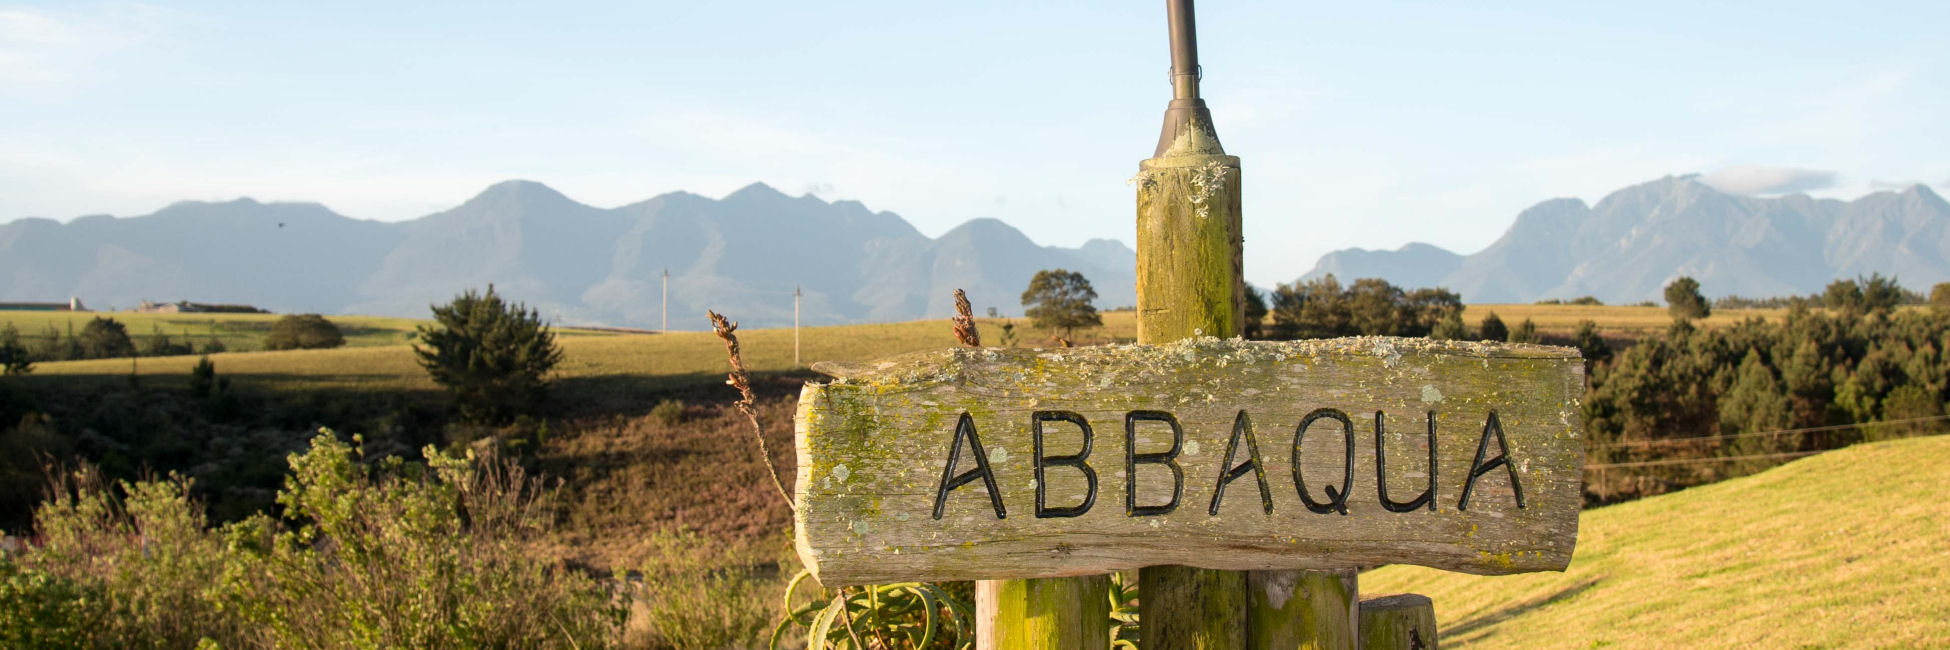 Abbaqua Luxury Self-Catering Accommodation in George